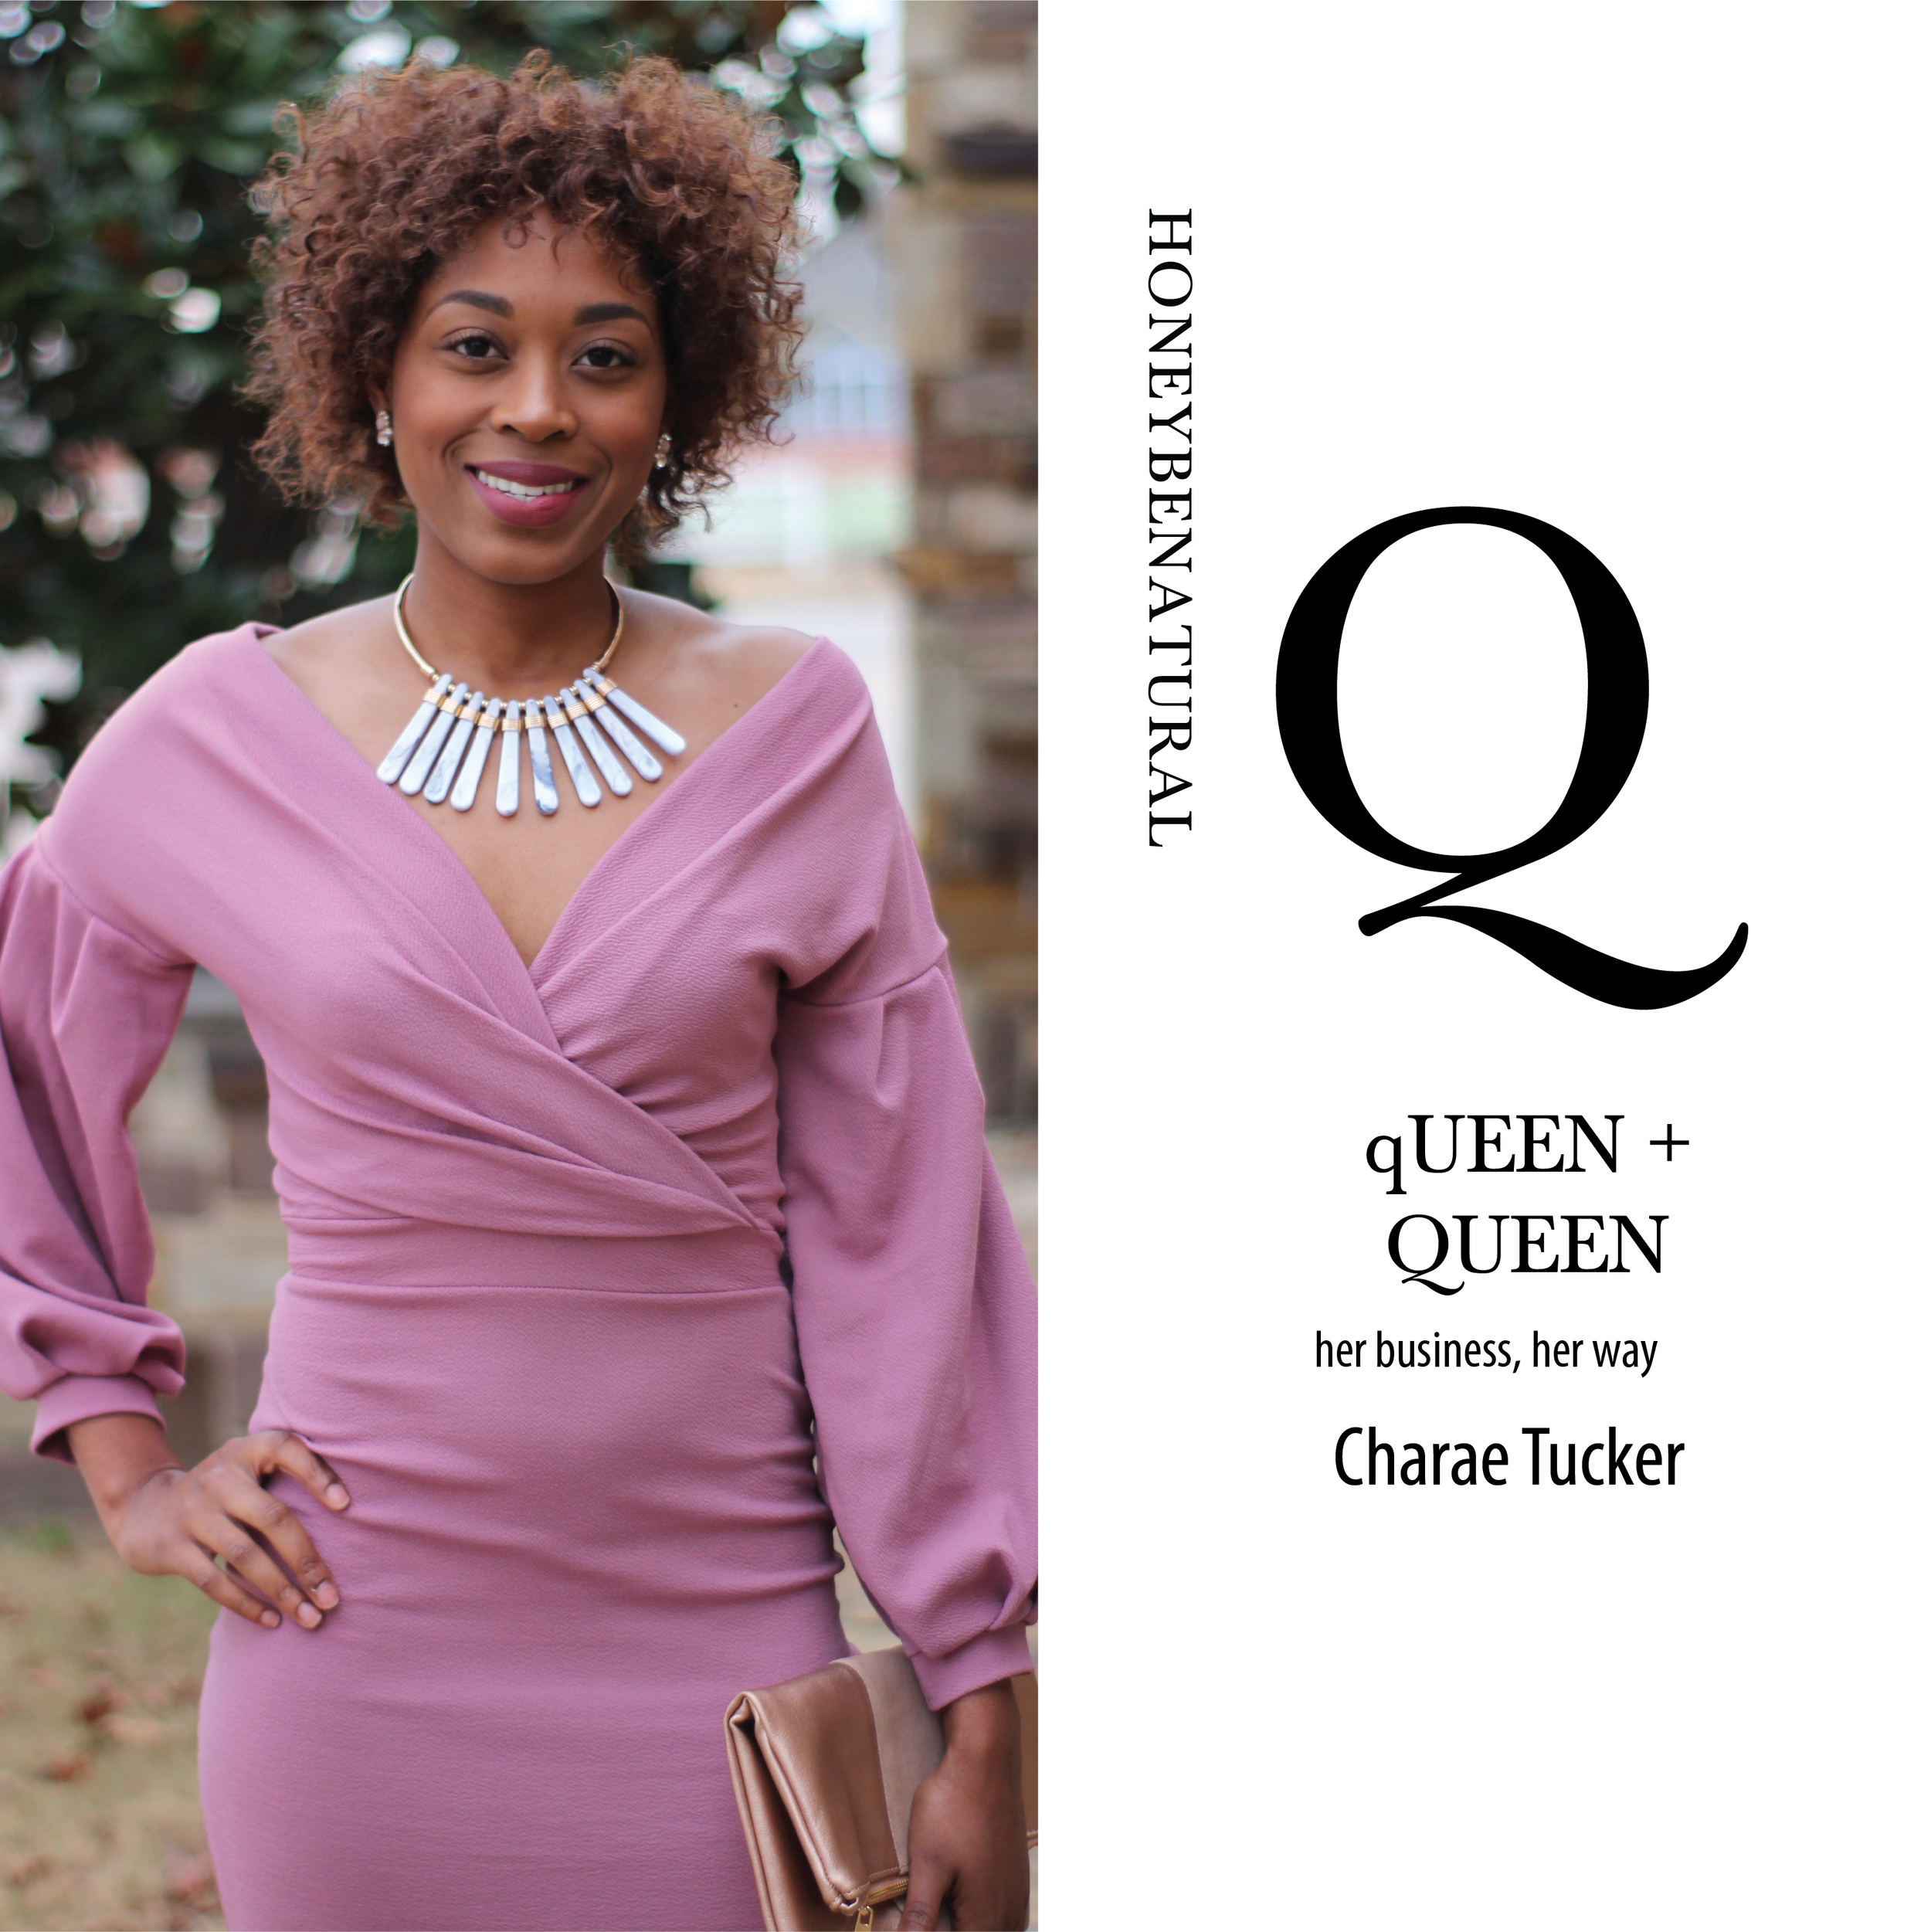 QueenPlusQueen_July 2019_Charae Tucker_Title-01.png